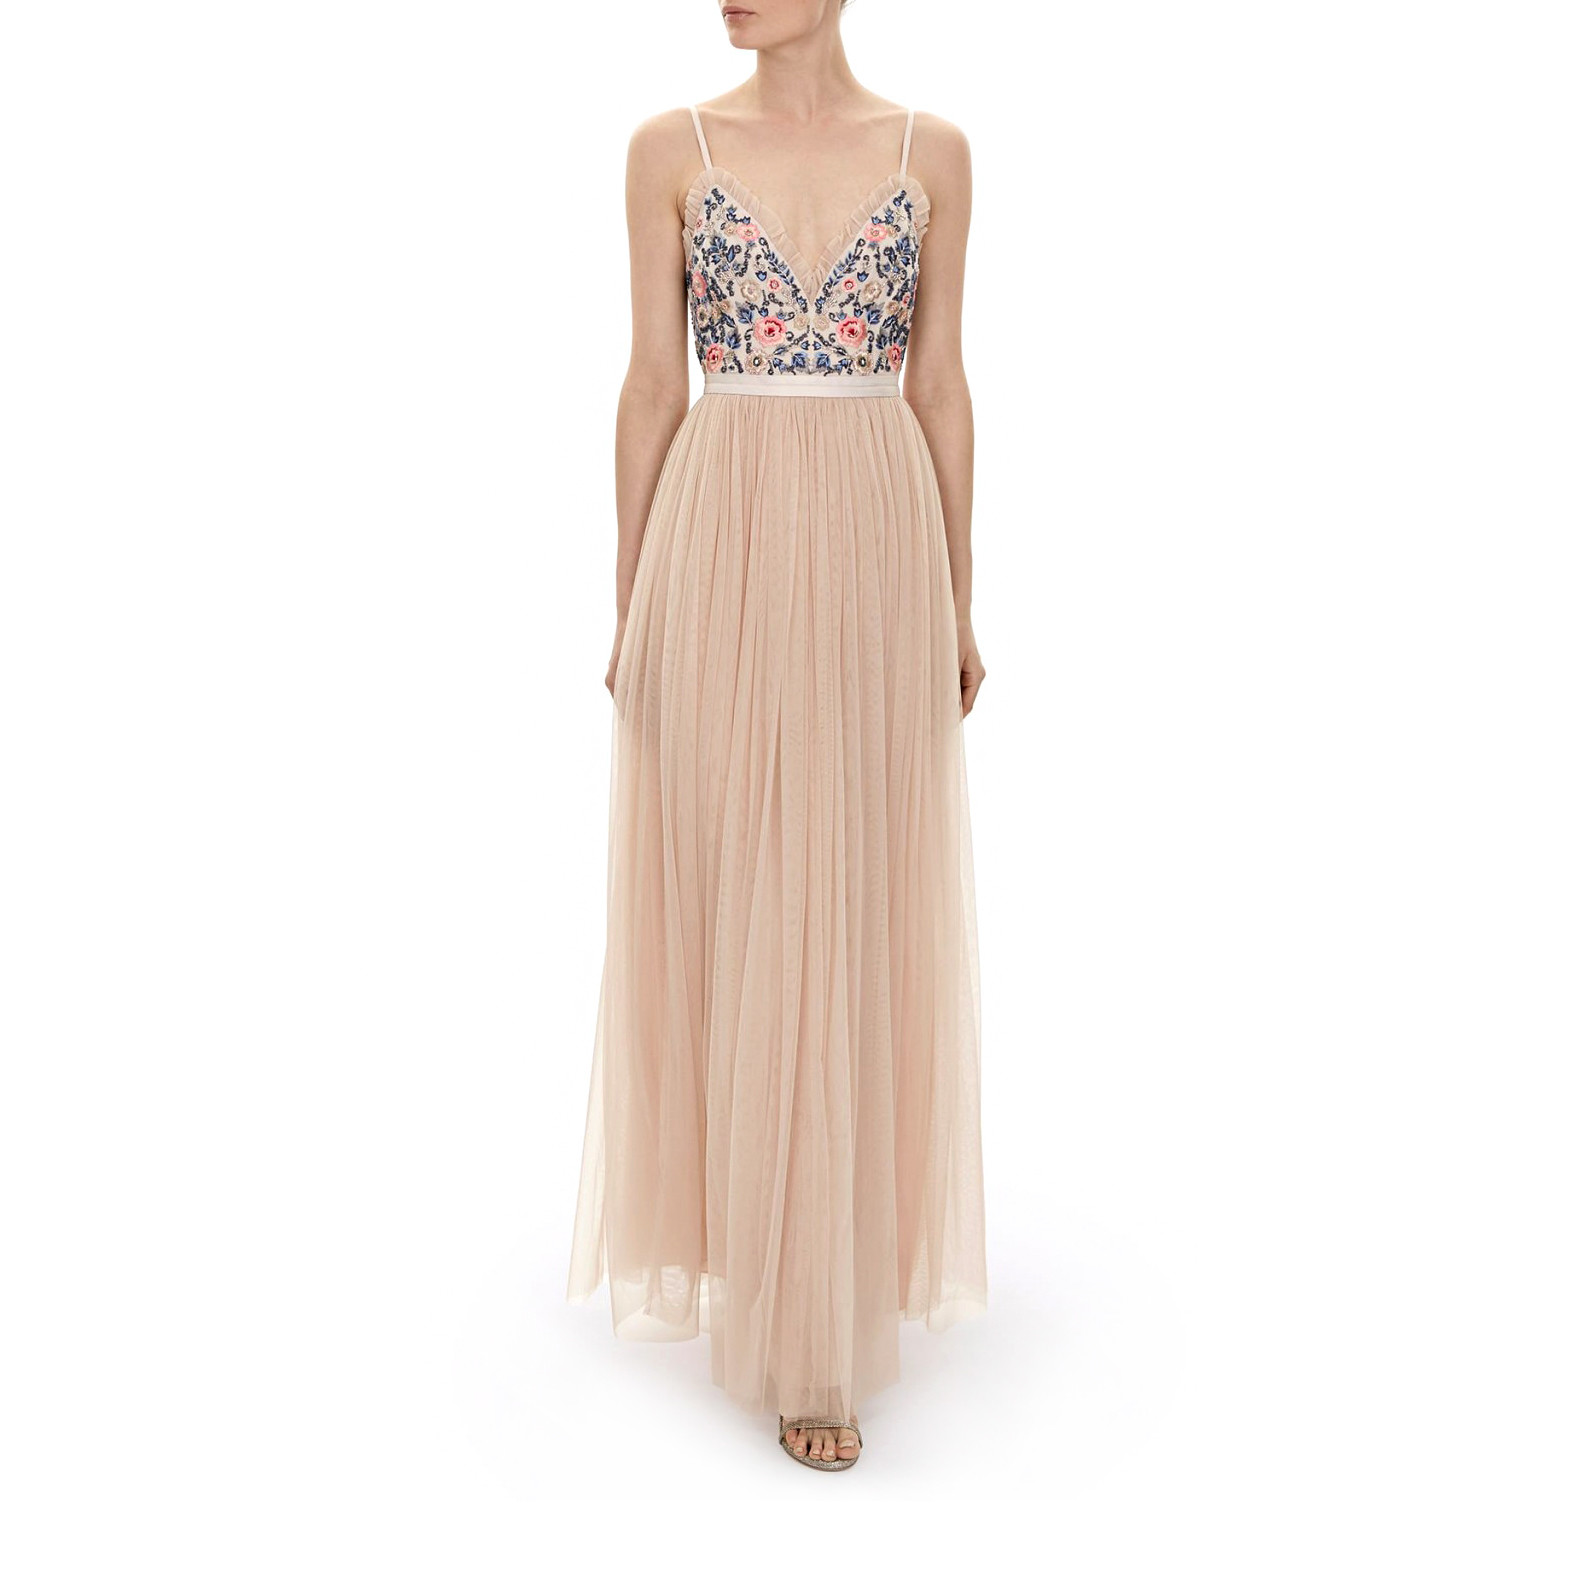 Long Gowns For Wedding Guests: 32 Perfect Dresses To Wear As A Wedding Guest This Summer